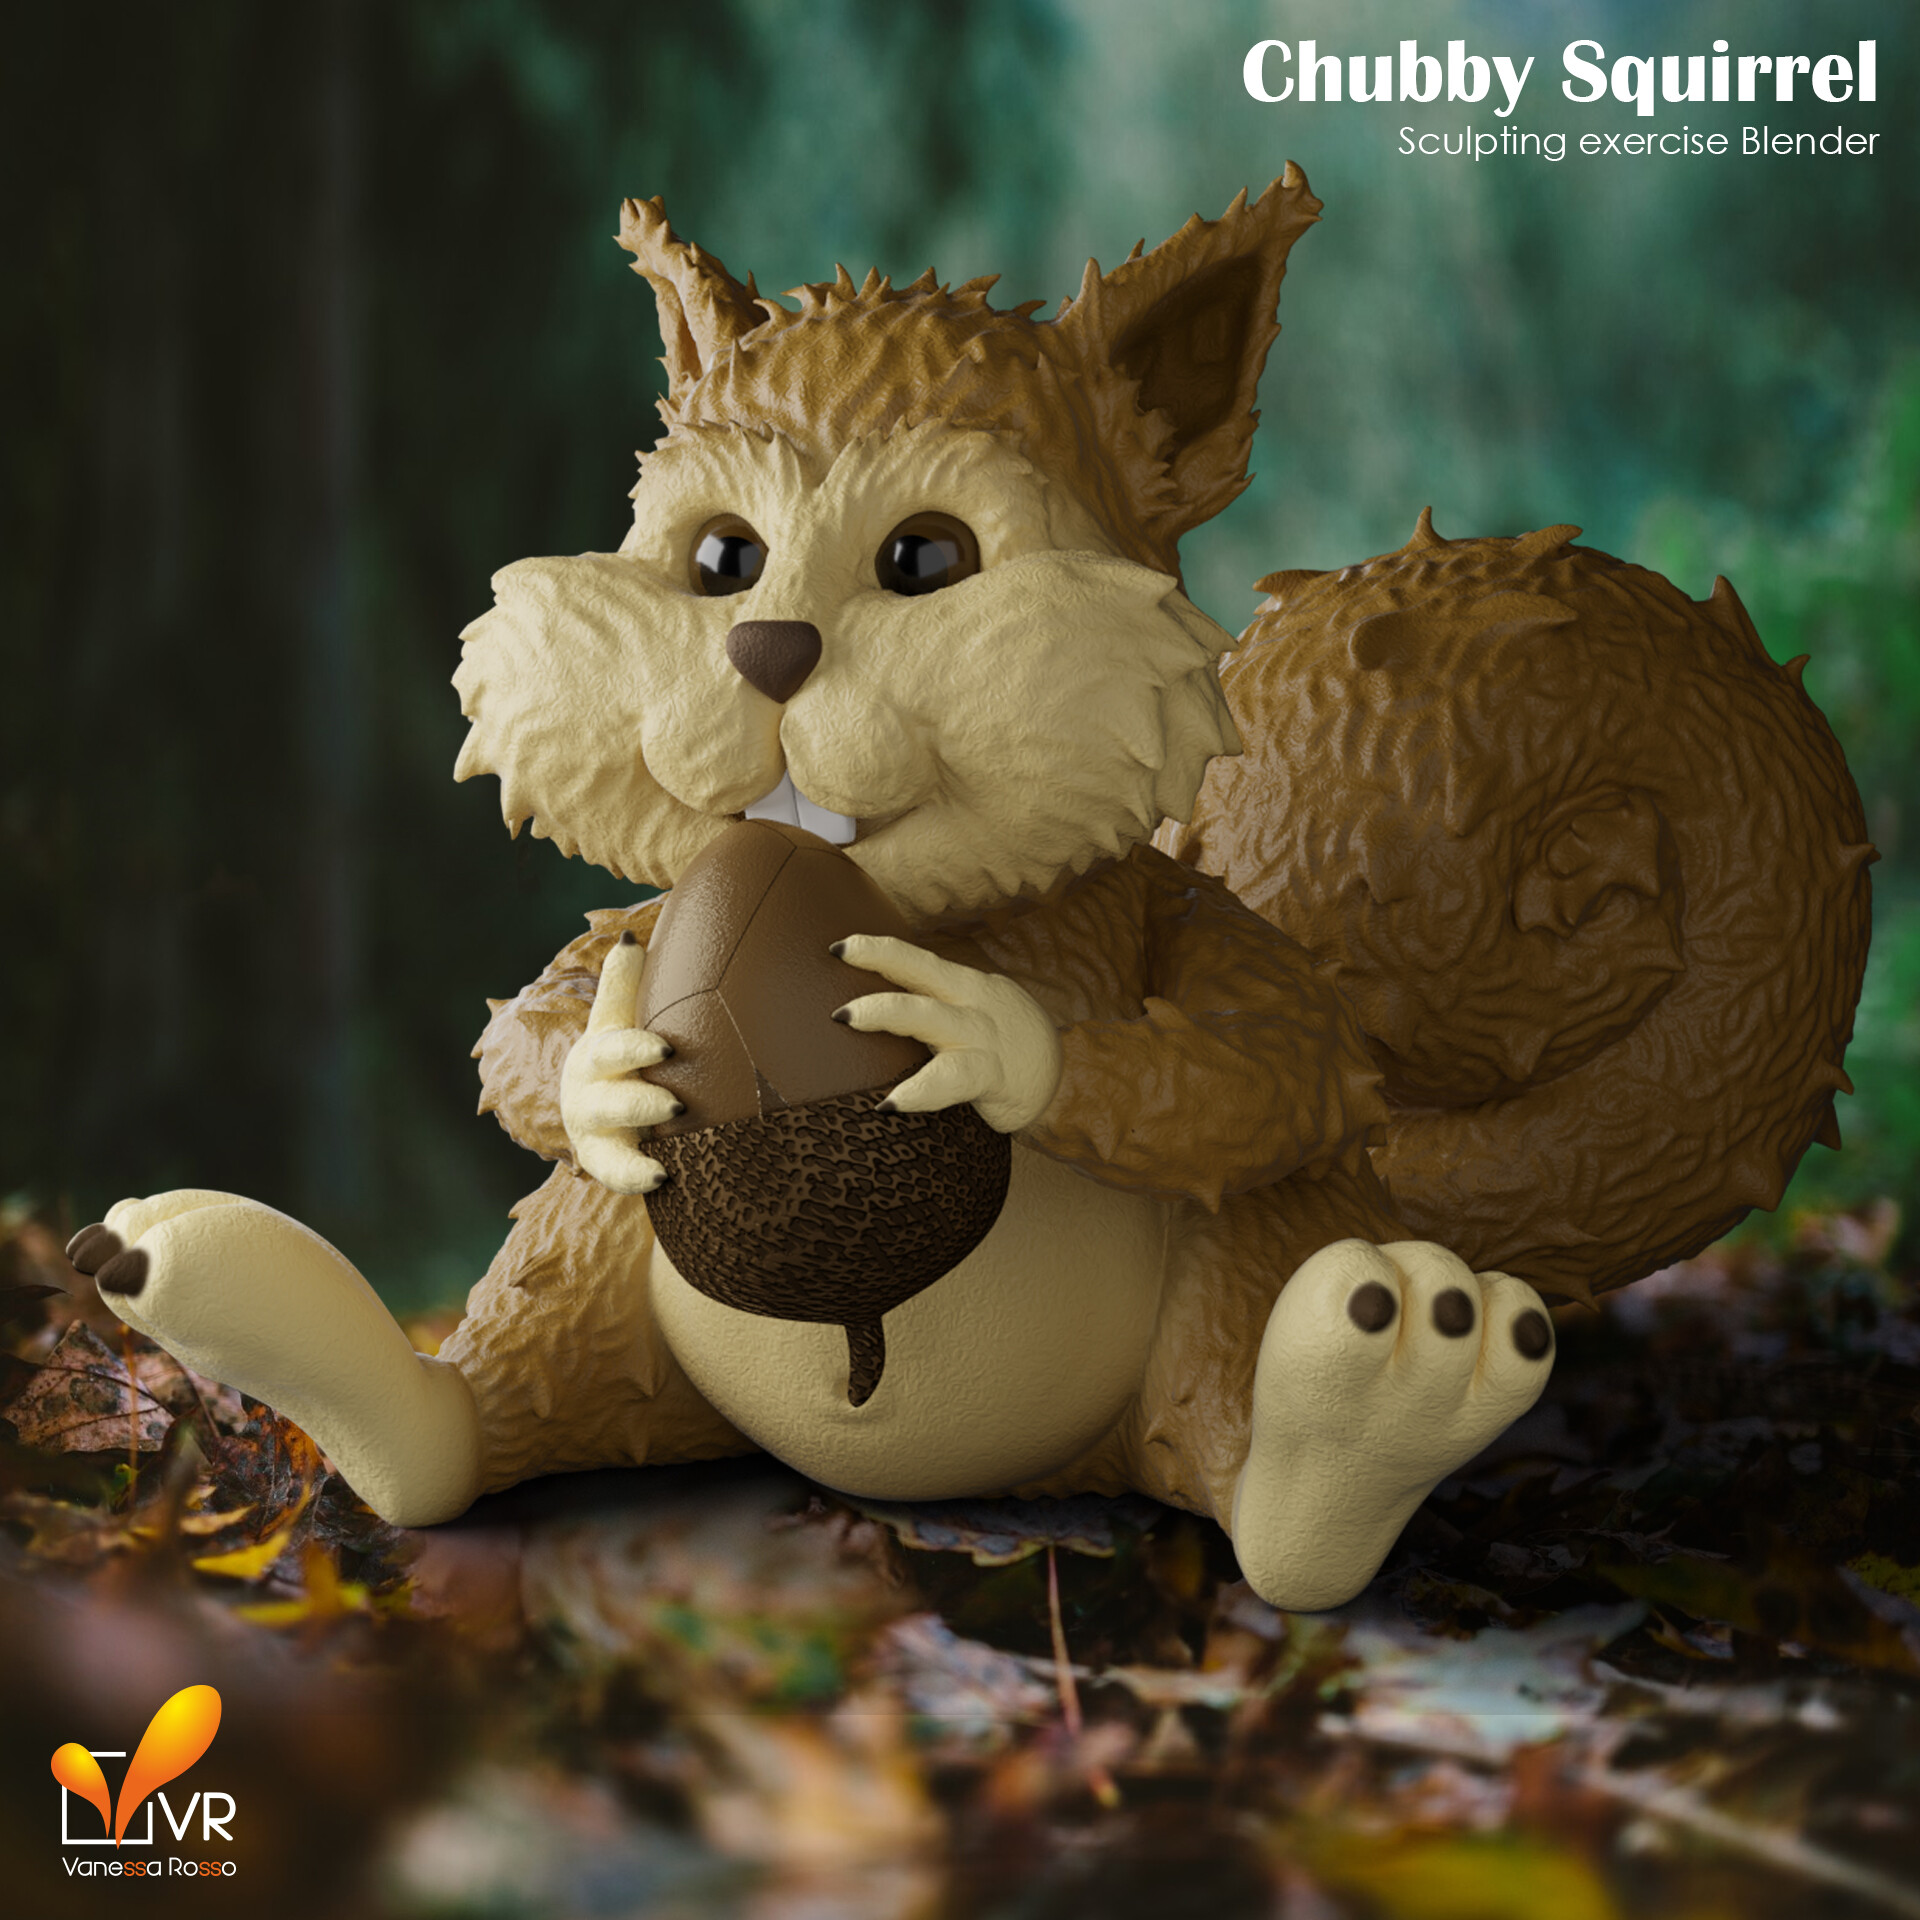 Vanessa Rosso Chubby Squirrel Check out our chubby squirrel selection for the very best in unique or custom, handmade pieces from our shops. vanessa rosso